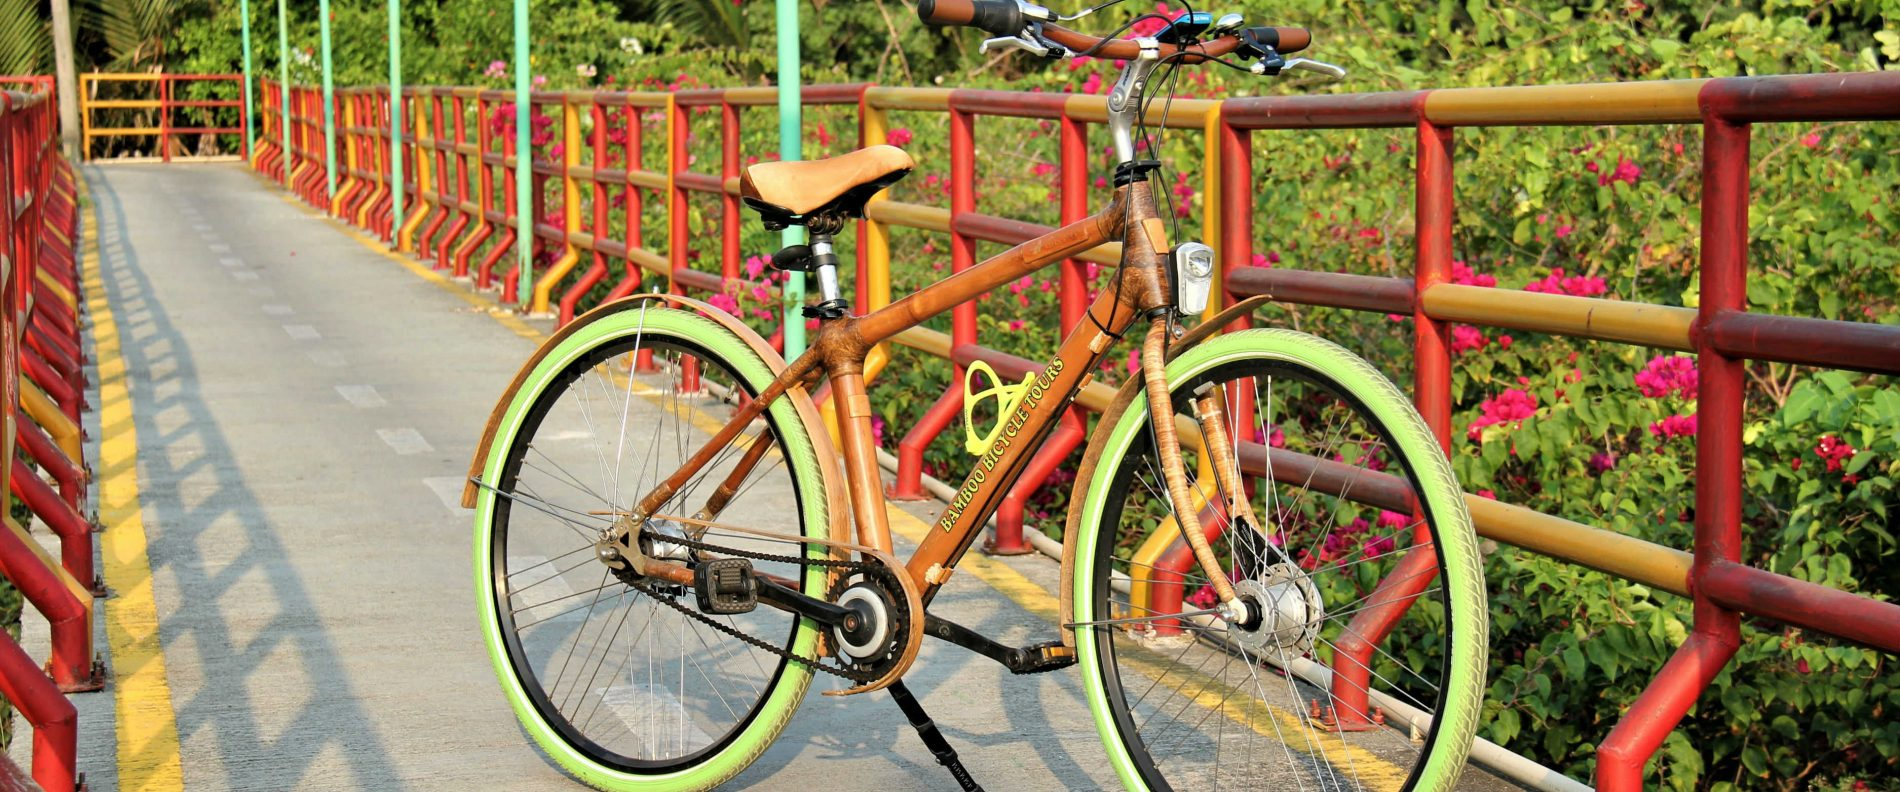 Bamboo bike on bike line with flowers